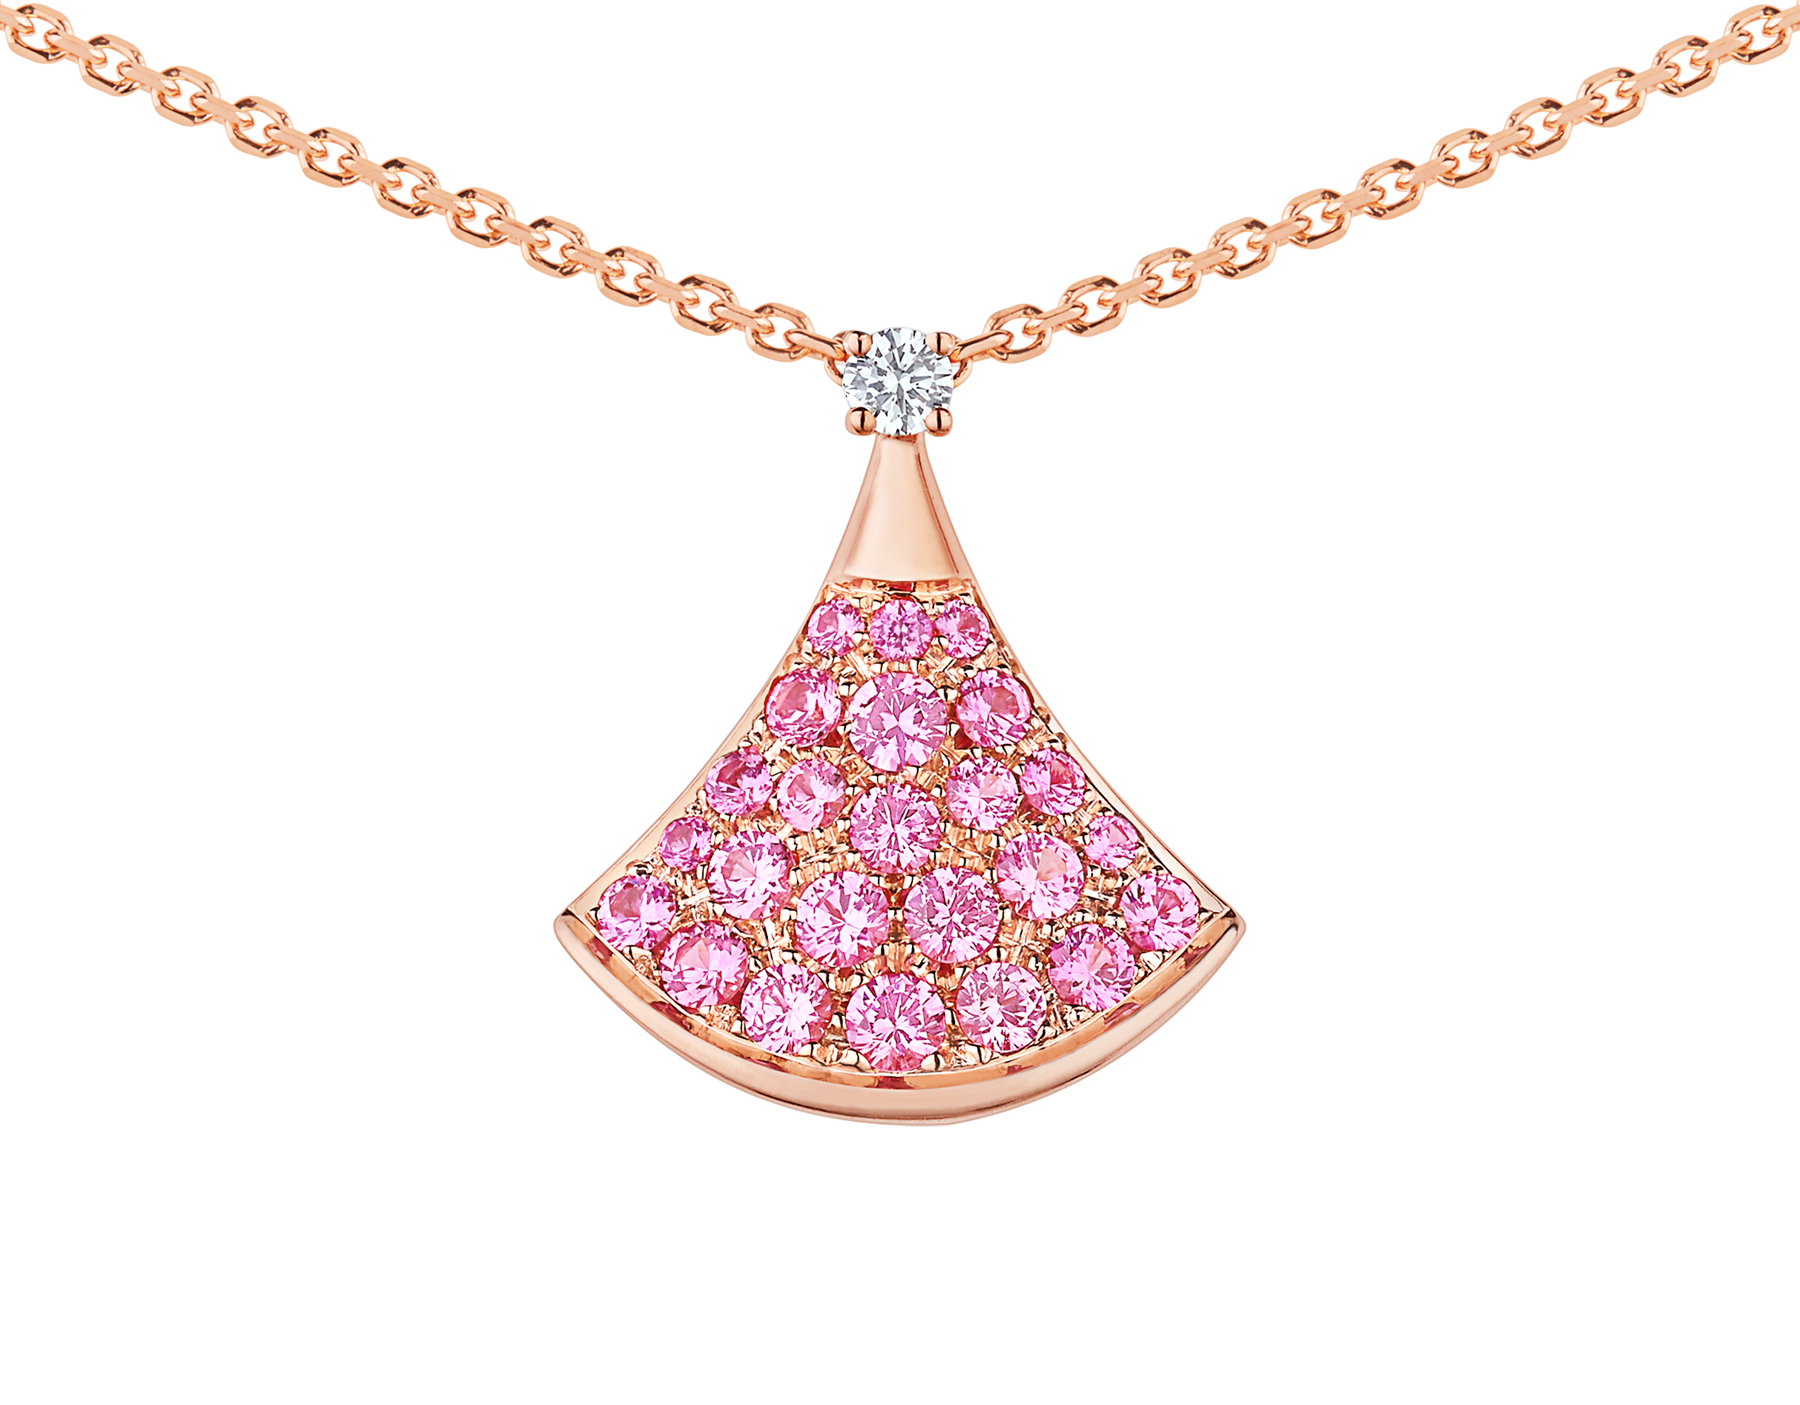 Collier DIVAS' DREAM en or rose 18 K avec pendentif en or rose 18 K serti d'un diamant (0,03 ct) et pavé saphirs roses (0,55 ct) 355889 image 2